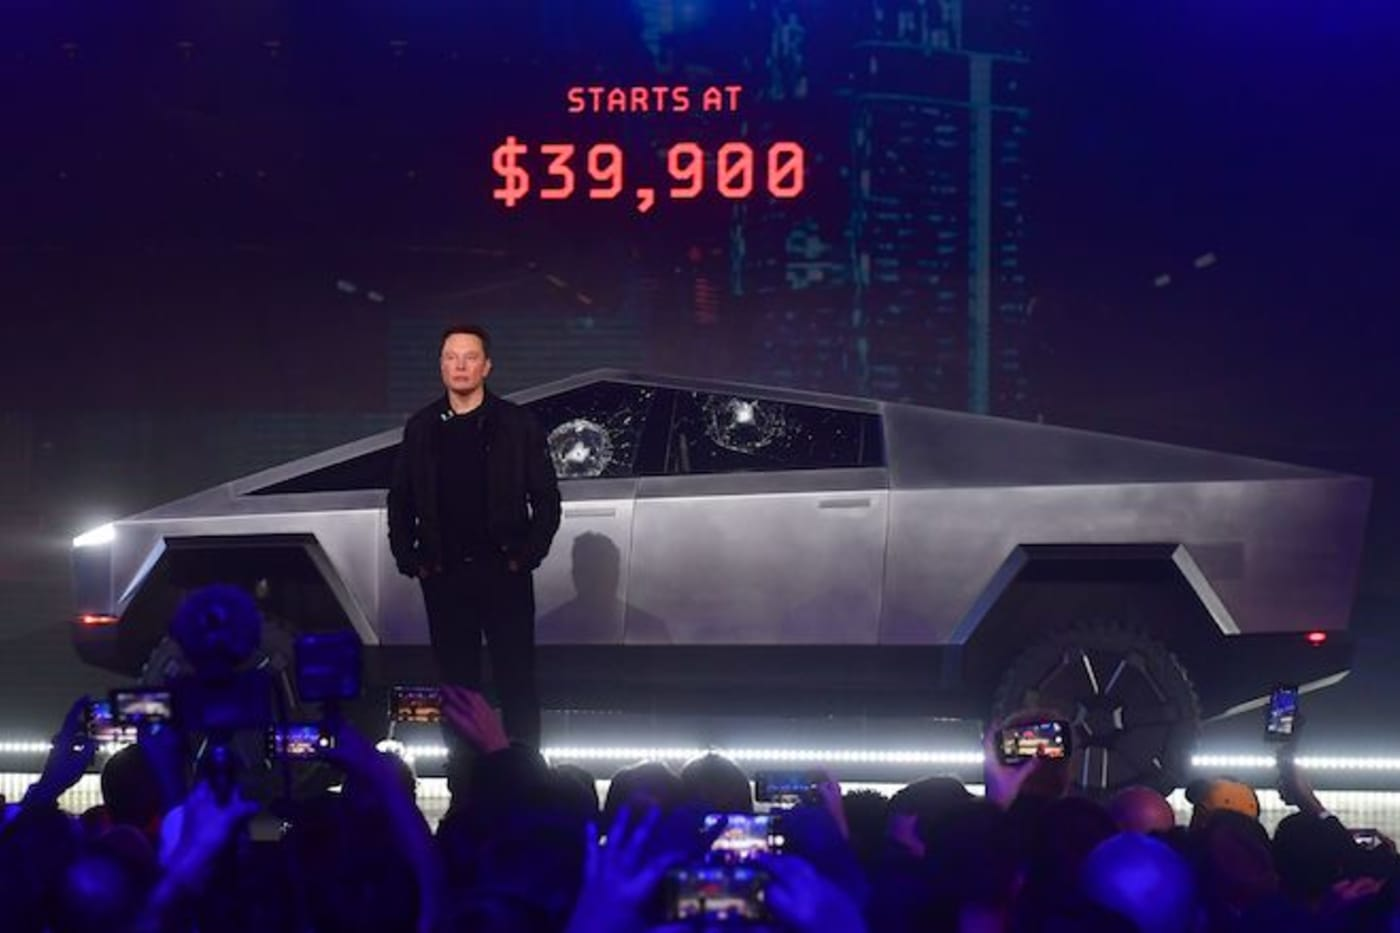 Tesla co founder and CEO Elon Musk unveils all electric battery powered Tesla's Cybertruck.